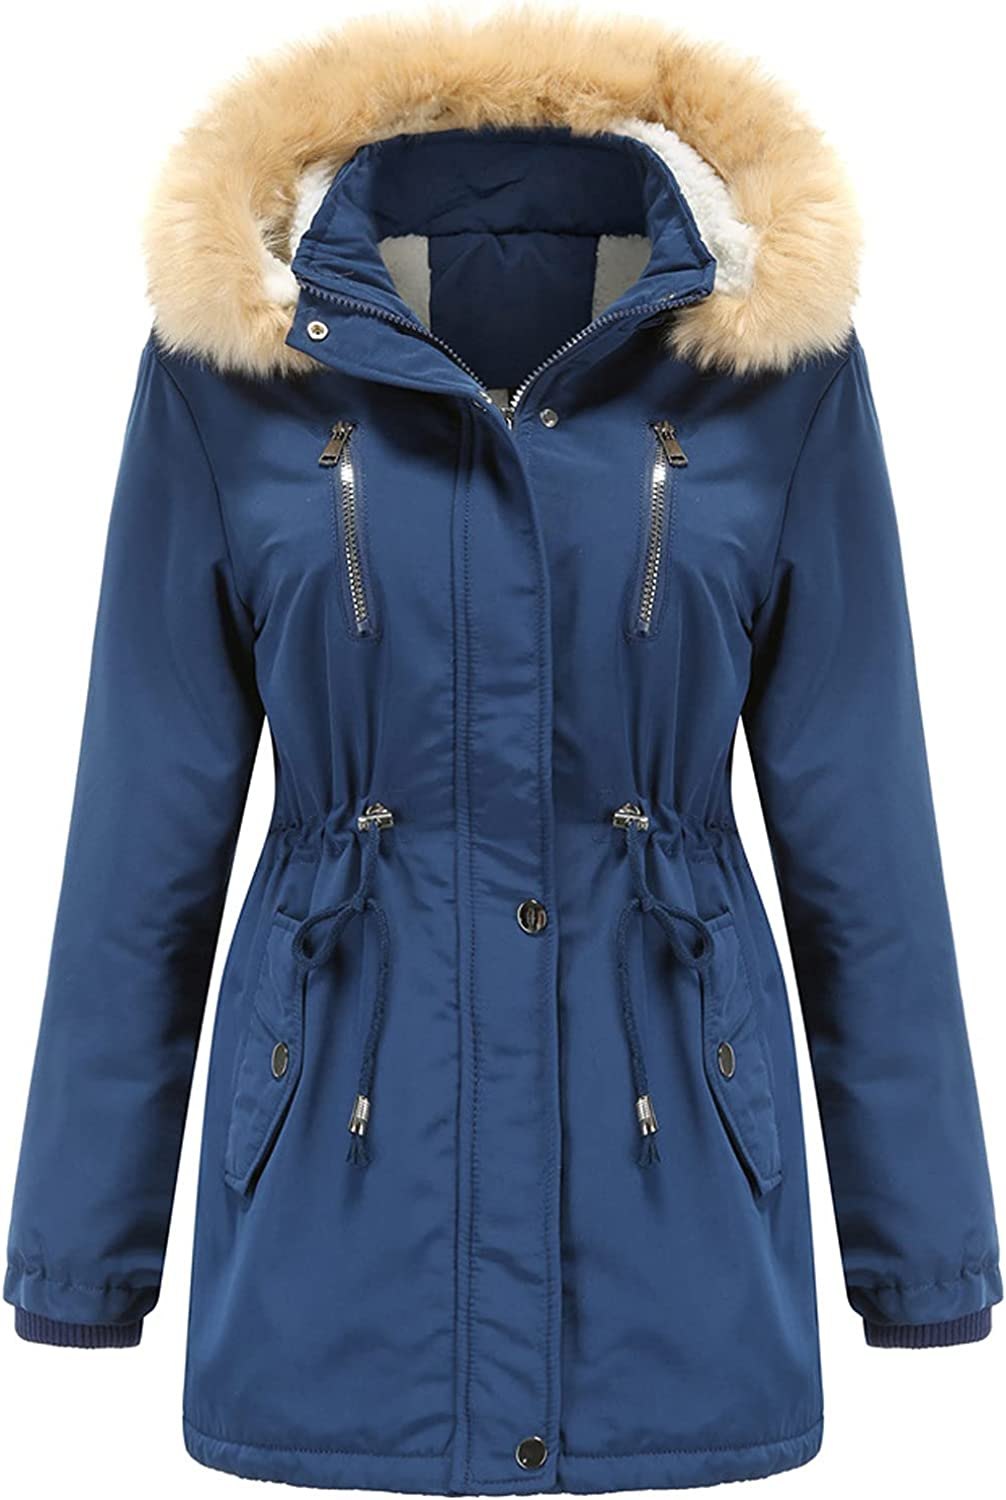 BFAFEN Womens Parka Winter Challenge the lowest price of Japan ☆ Coats with Color Hood Reservation Fur Solid Fleec